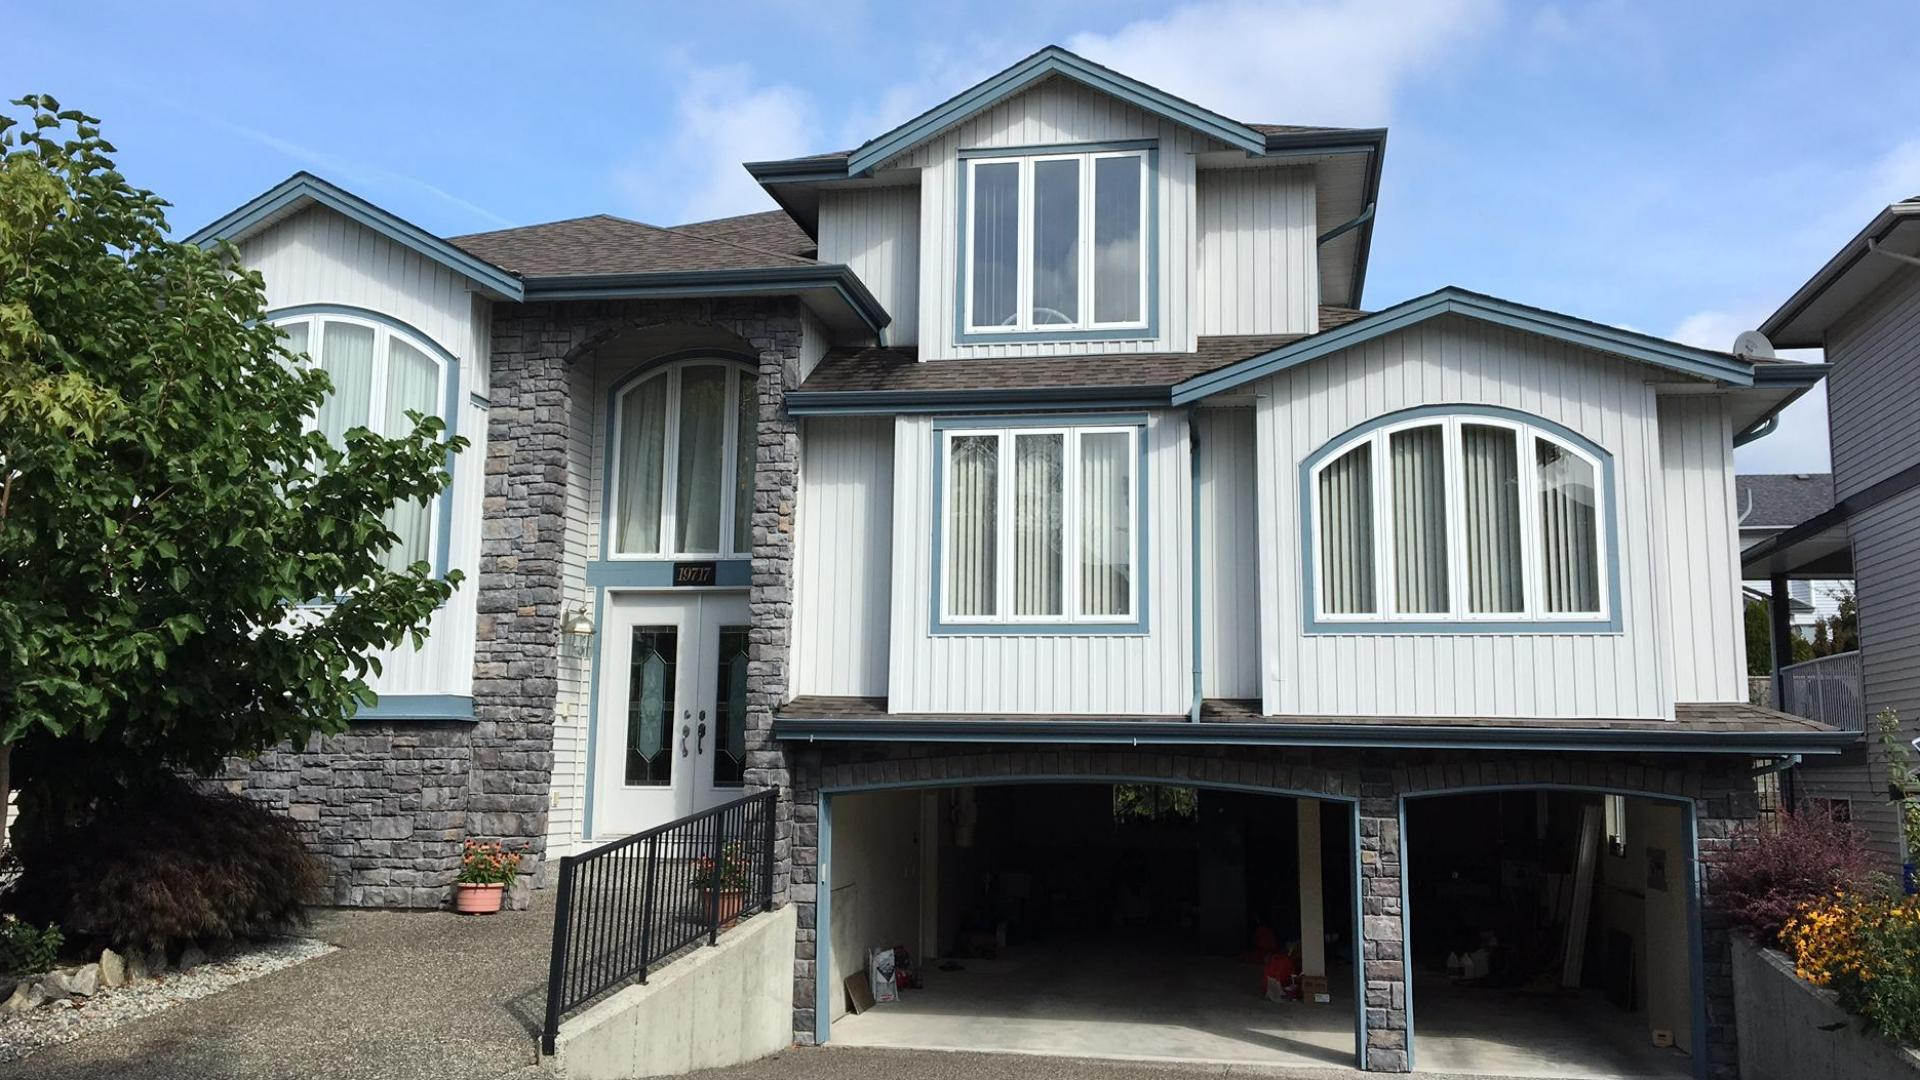 19717 Joyner Place, South Meadows, Pitt Meadows